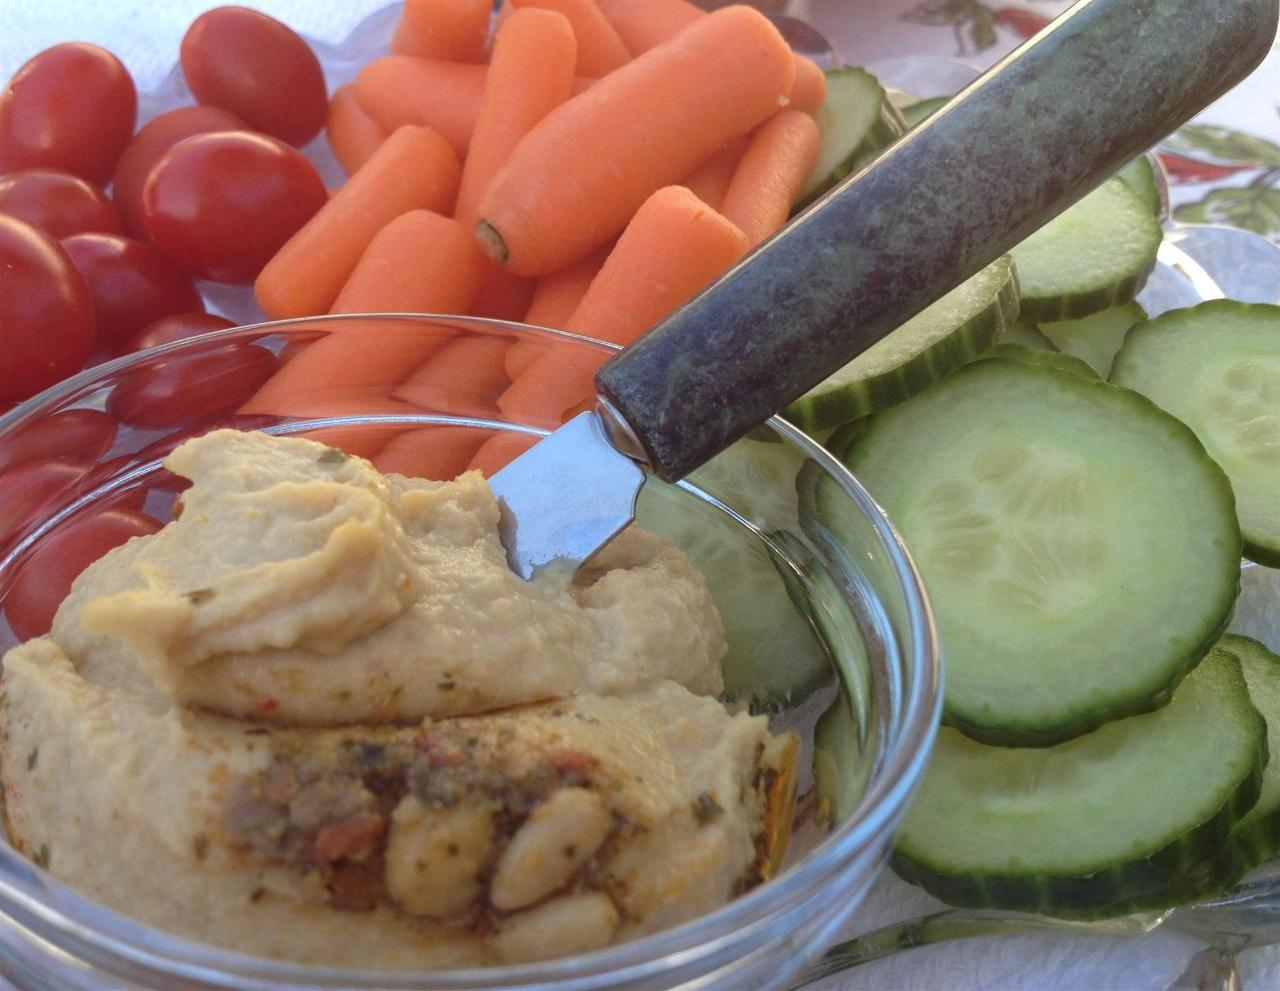 Enjoy a Fresh Wine Country Snack with Homemade Hummus & Fresh Vegtables